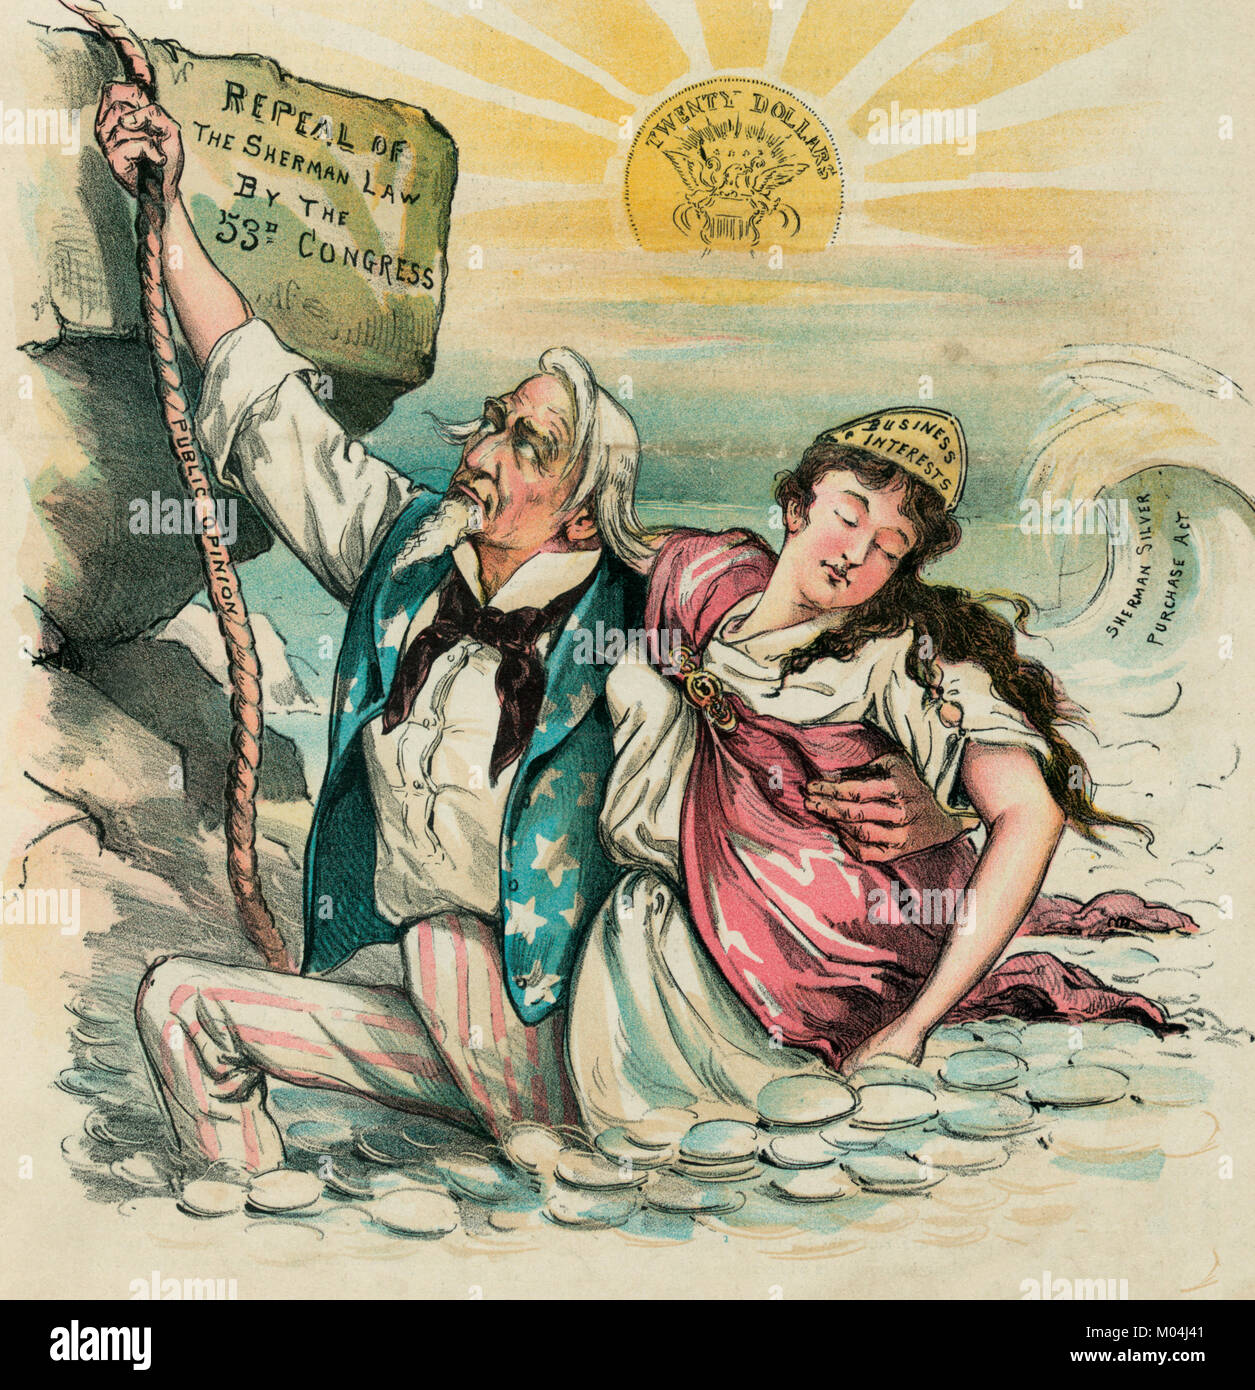 Out of the silver flood! Uncle Sam trying to climb out of a flood of silver coinage toward elevated ground labeled - Stock Image